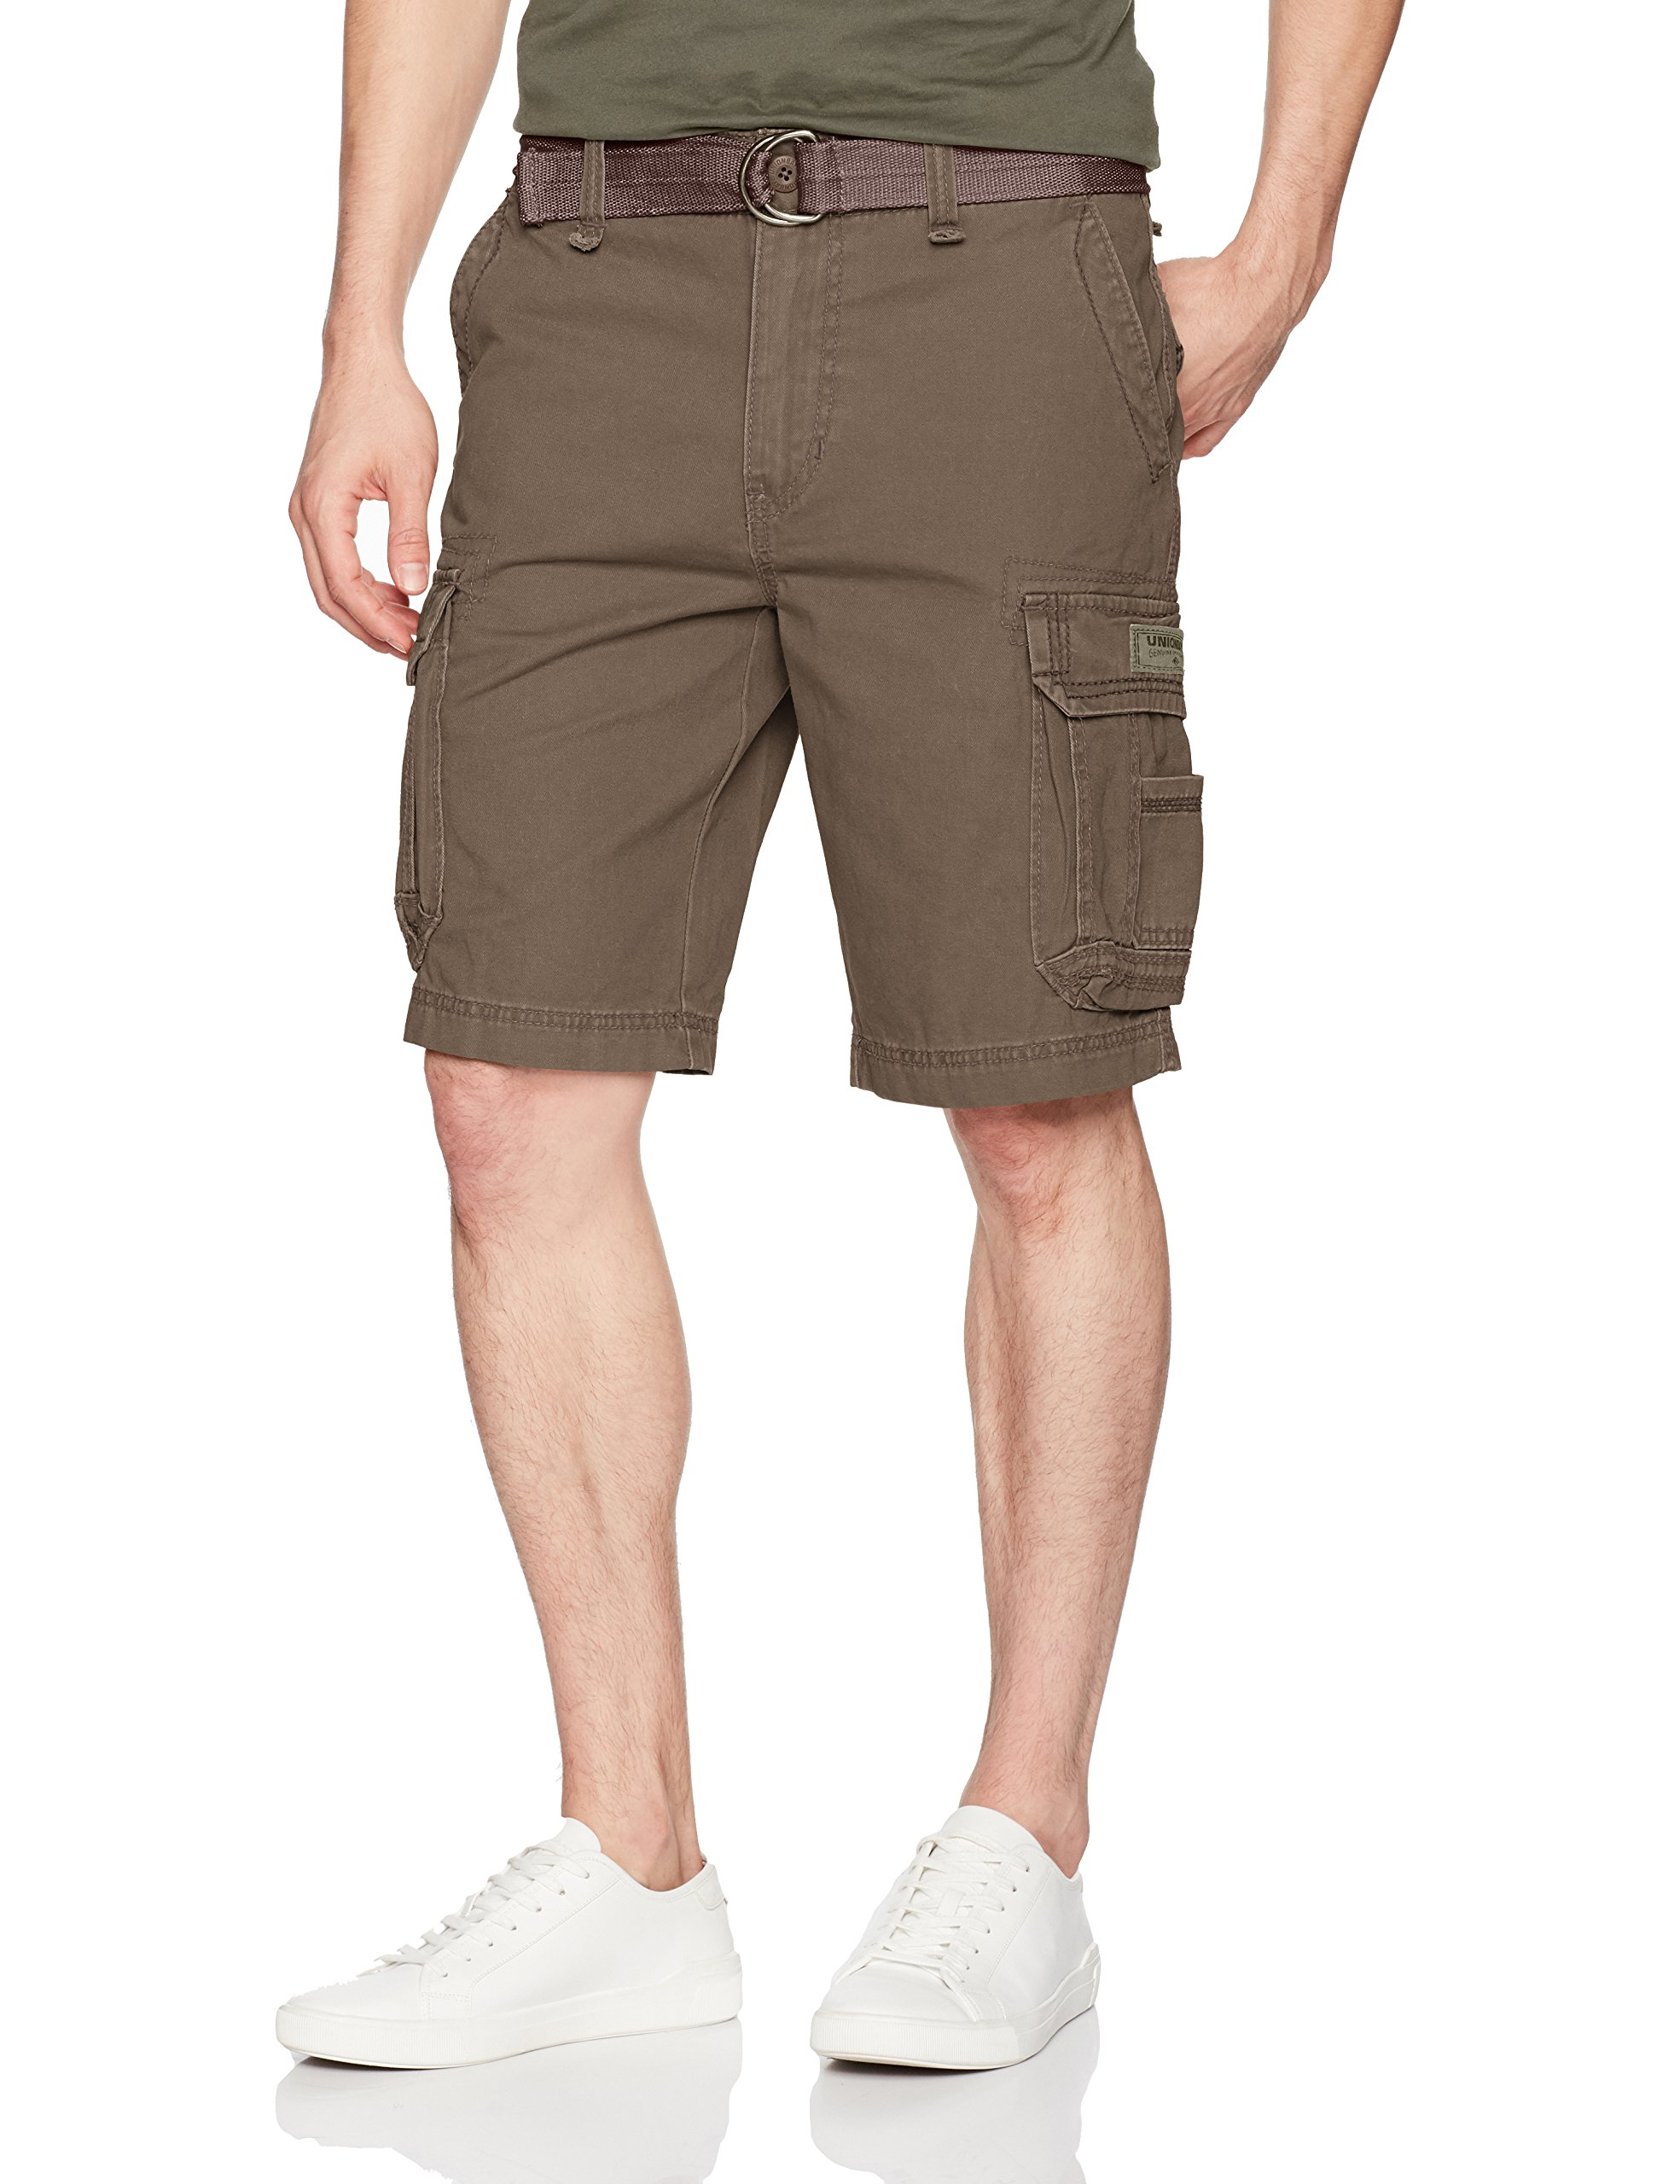 UNIONBAY Men's Survivor Belted Cargo Short-Reg and Big and Tall Sizes, Saddle, 36